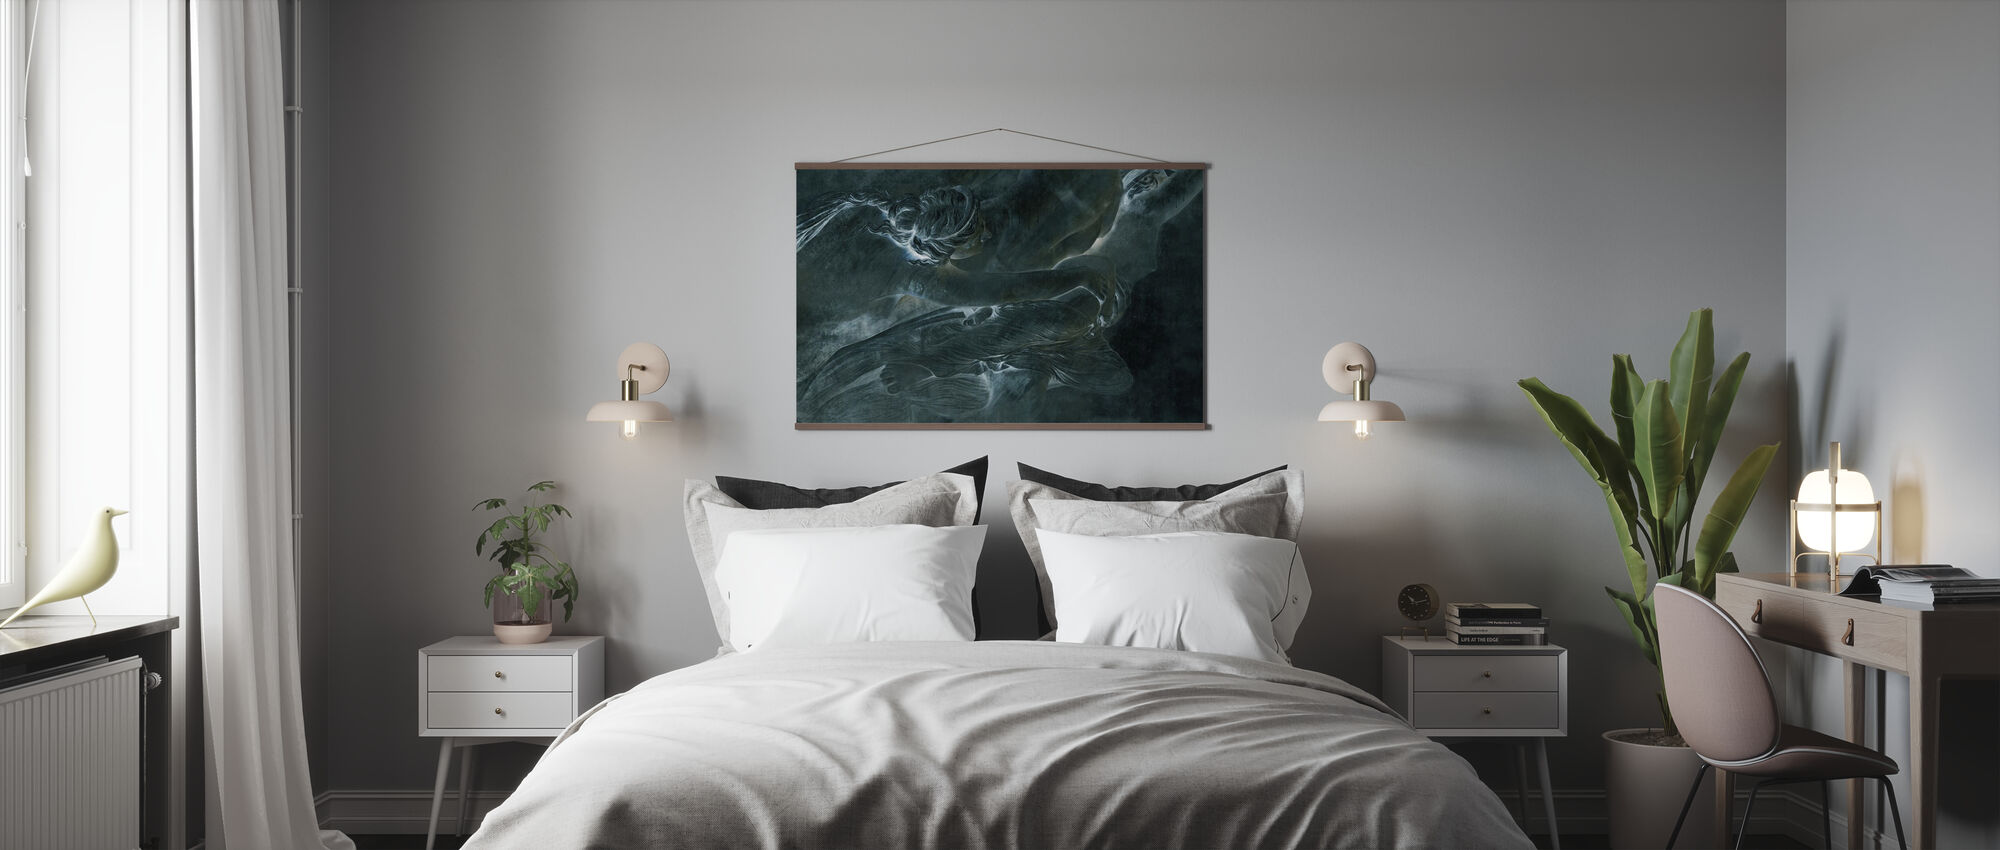 De la Sculpture - Dark Green - Poster - Bedroom